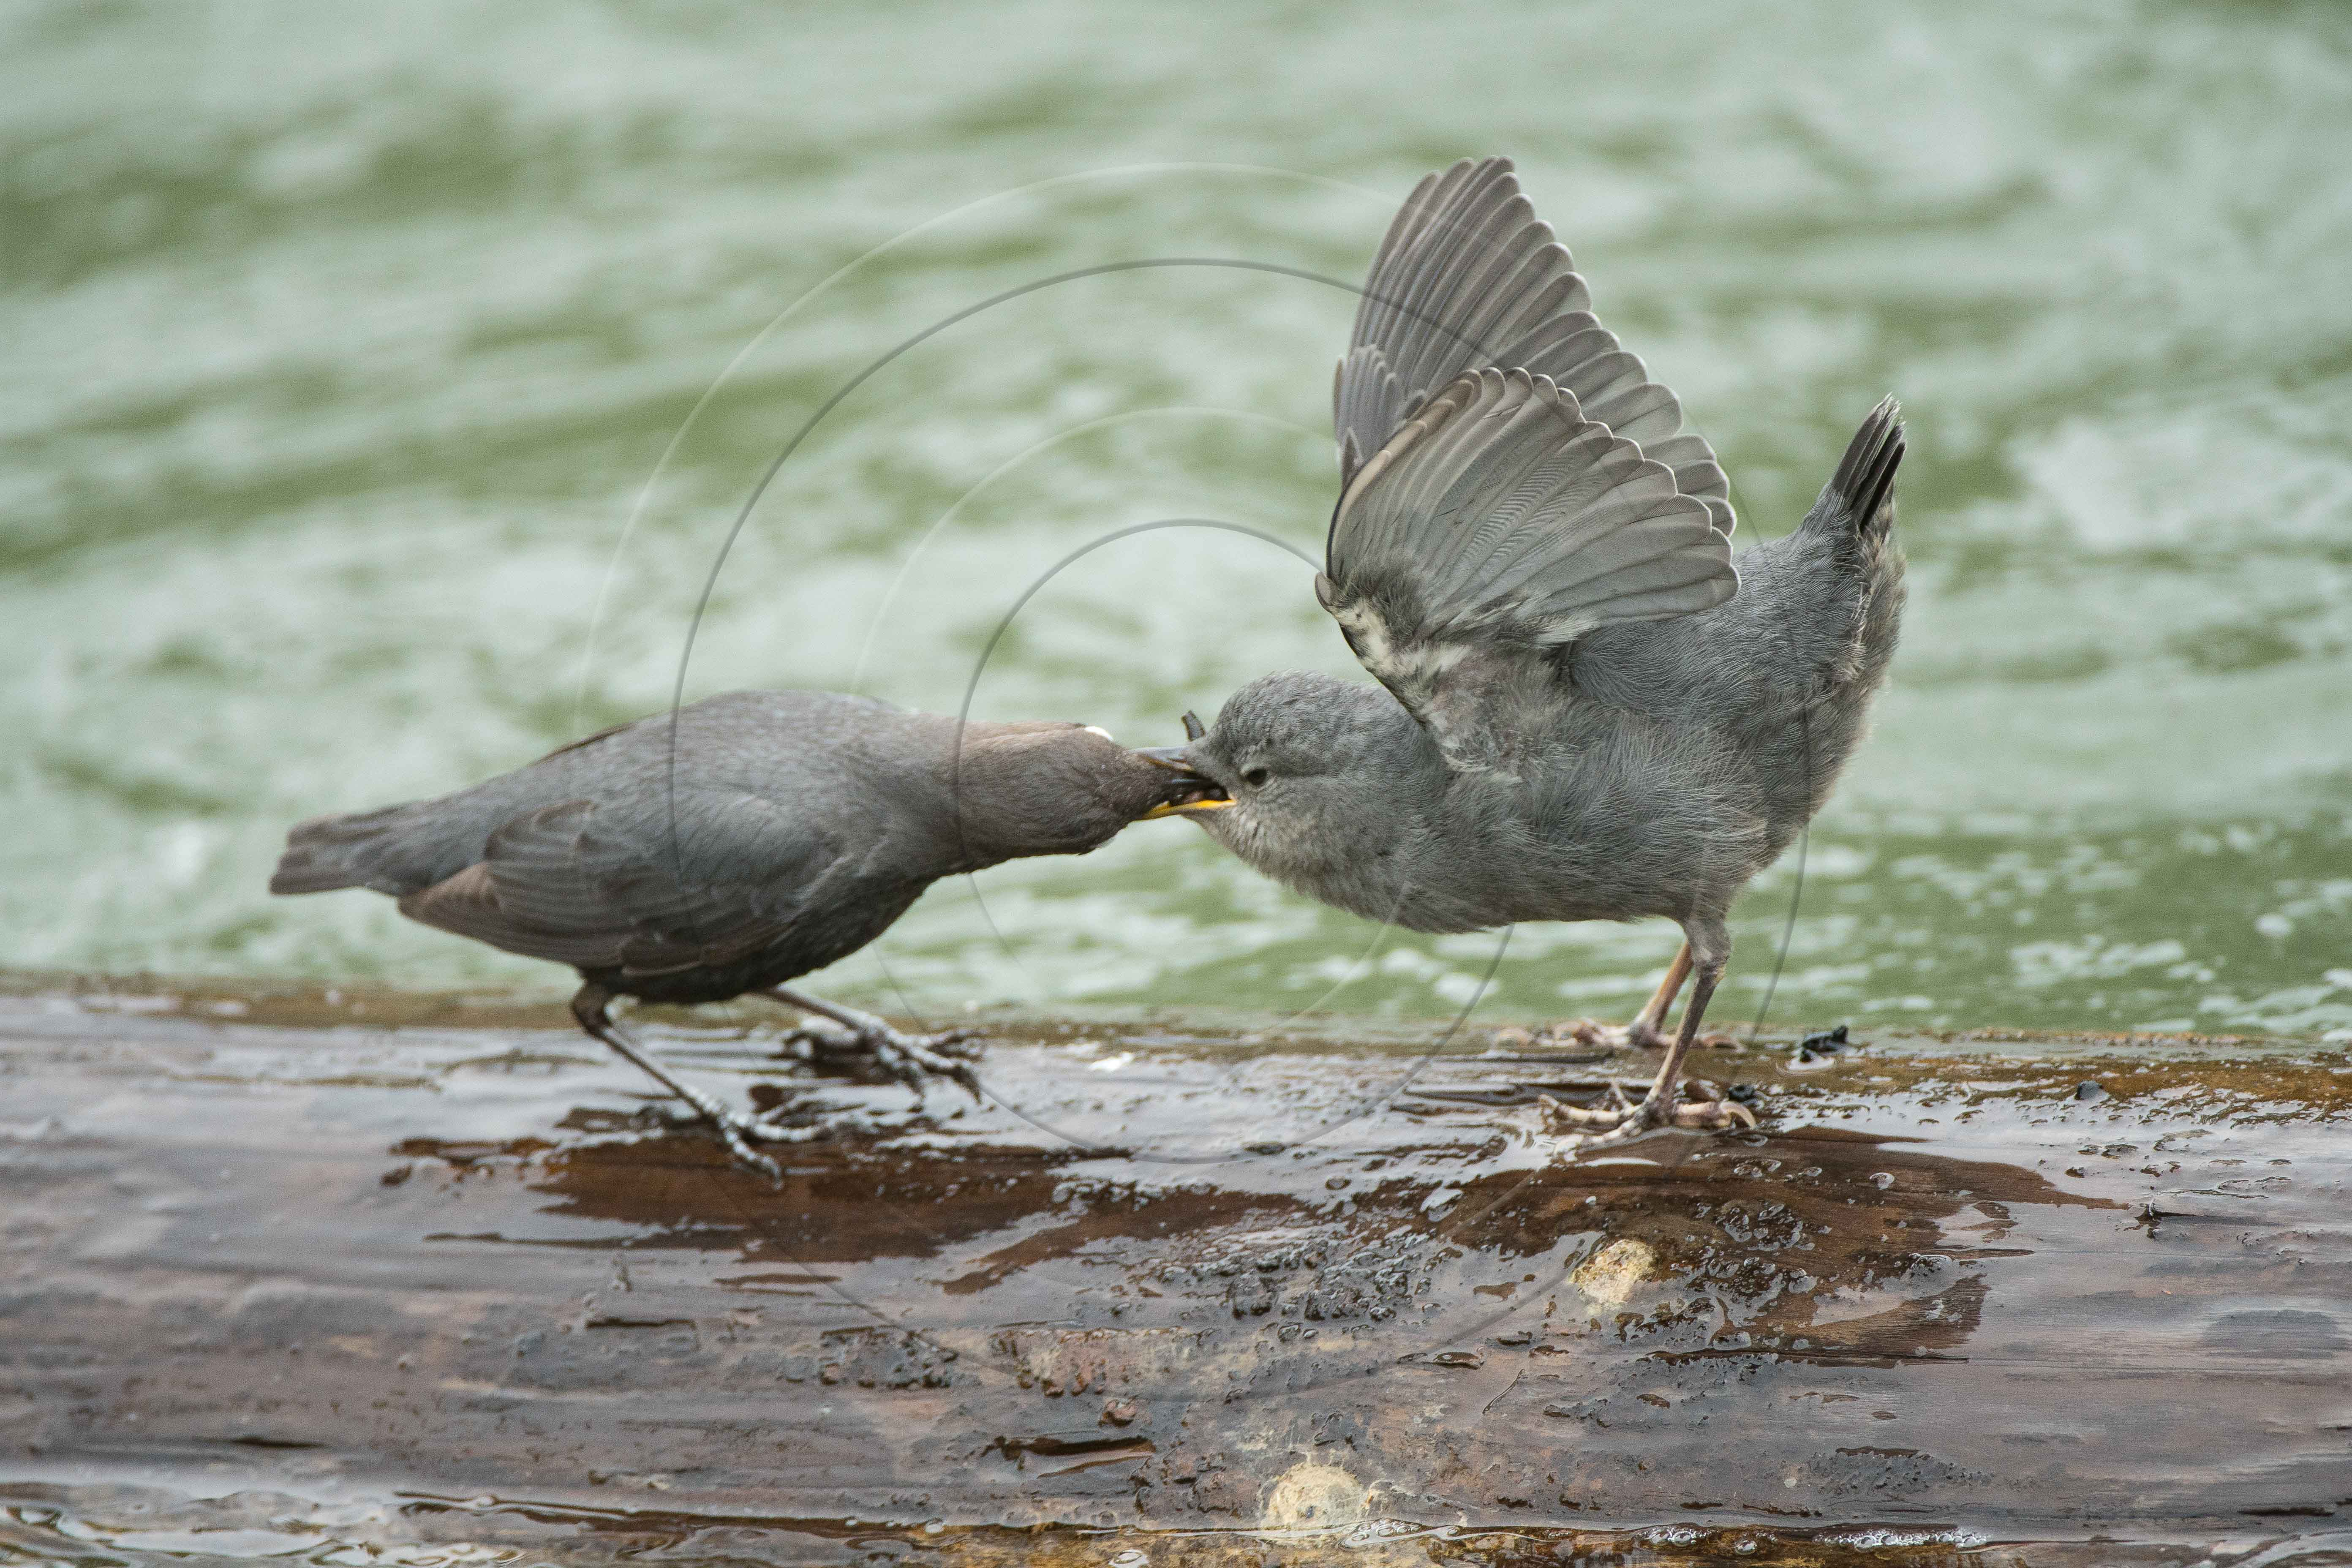 AMERICAN DIPPER FEEDING YOUNG